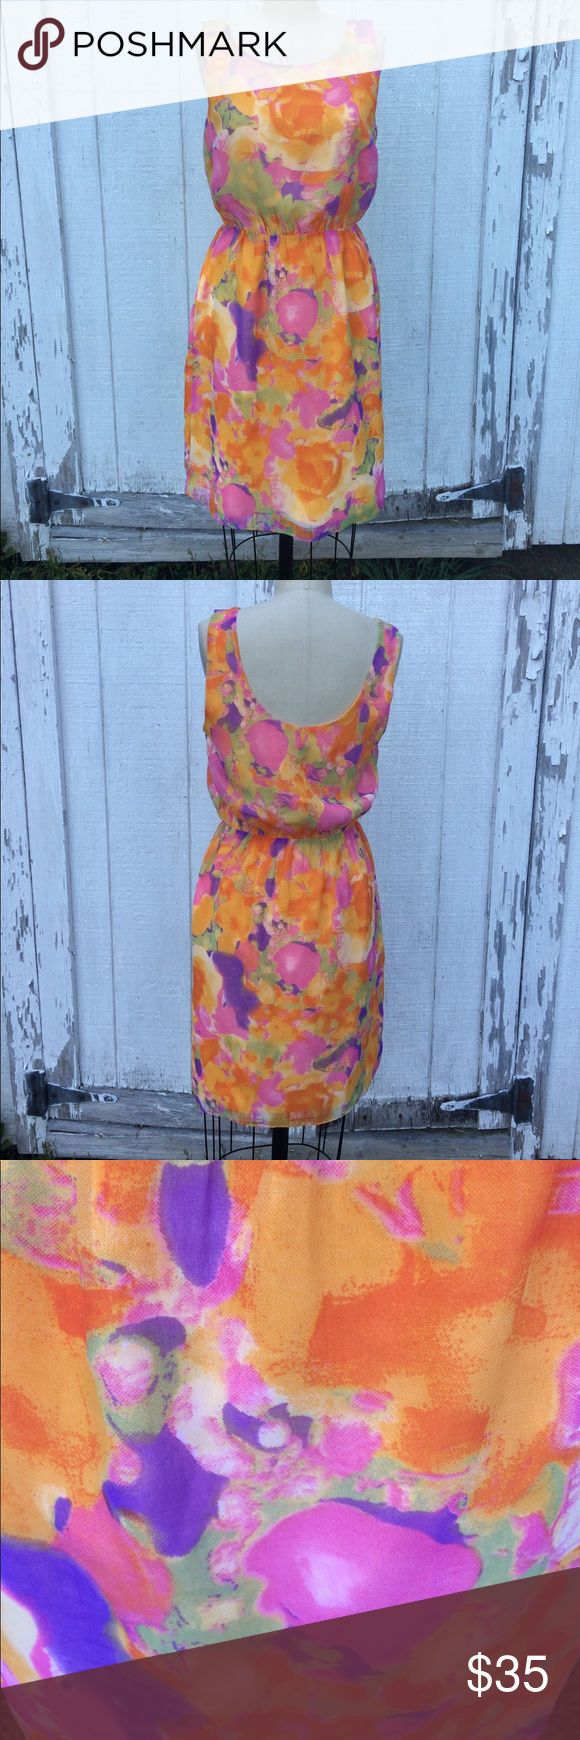 W118 by Walter Baker Dress Sz M W118 by Walter Baker Silky lined orange Floral Dress - Sz M. Has elastic waist. In excellent condition. W118 by Walter Baker Dresses Midi